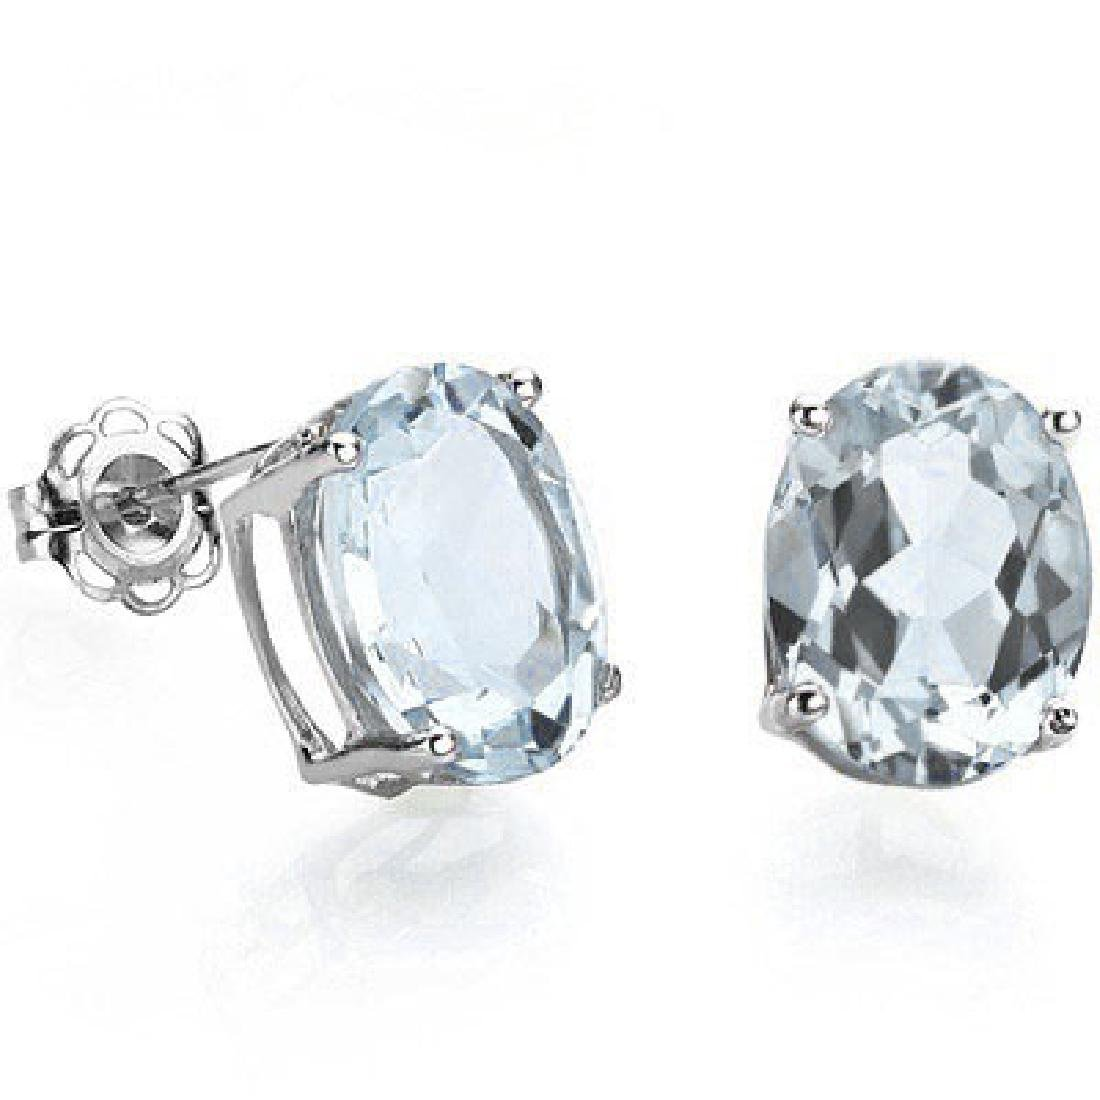 Oval 4x6mm Aquamarine Stud Earrings in Sterling Silver